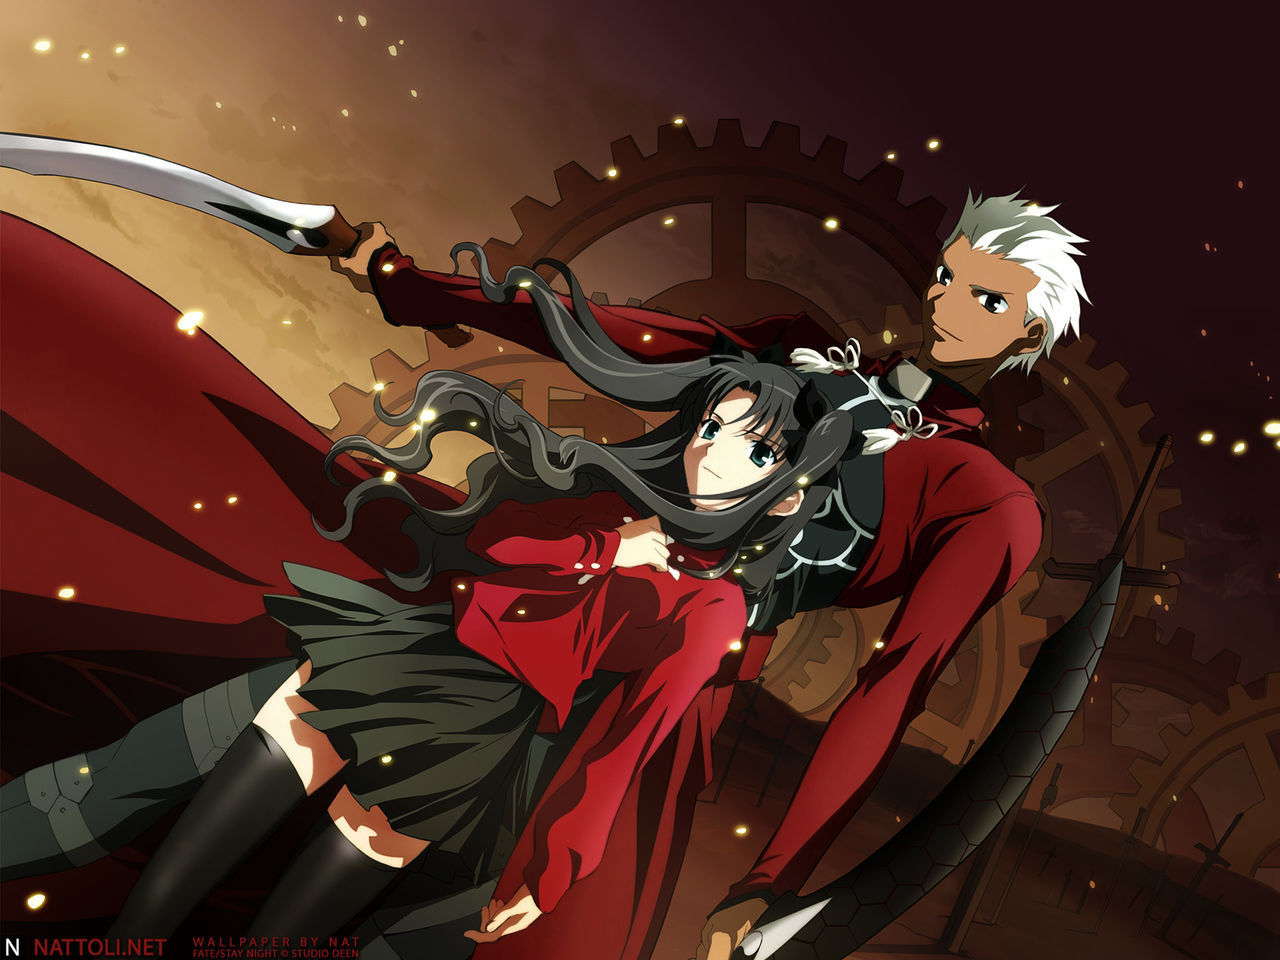 Free Download Fate Stay Night Archer Fate Archer Fate Stay Night